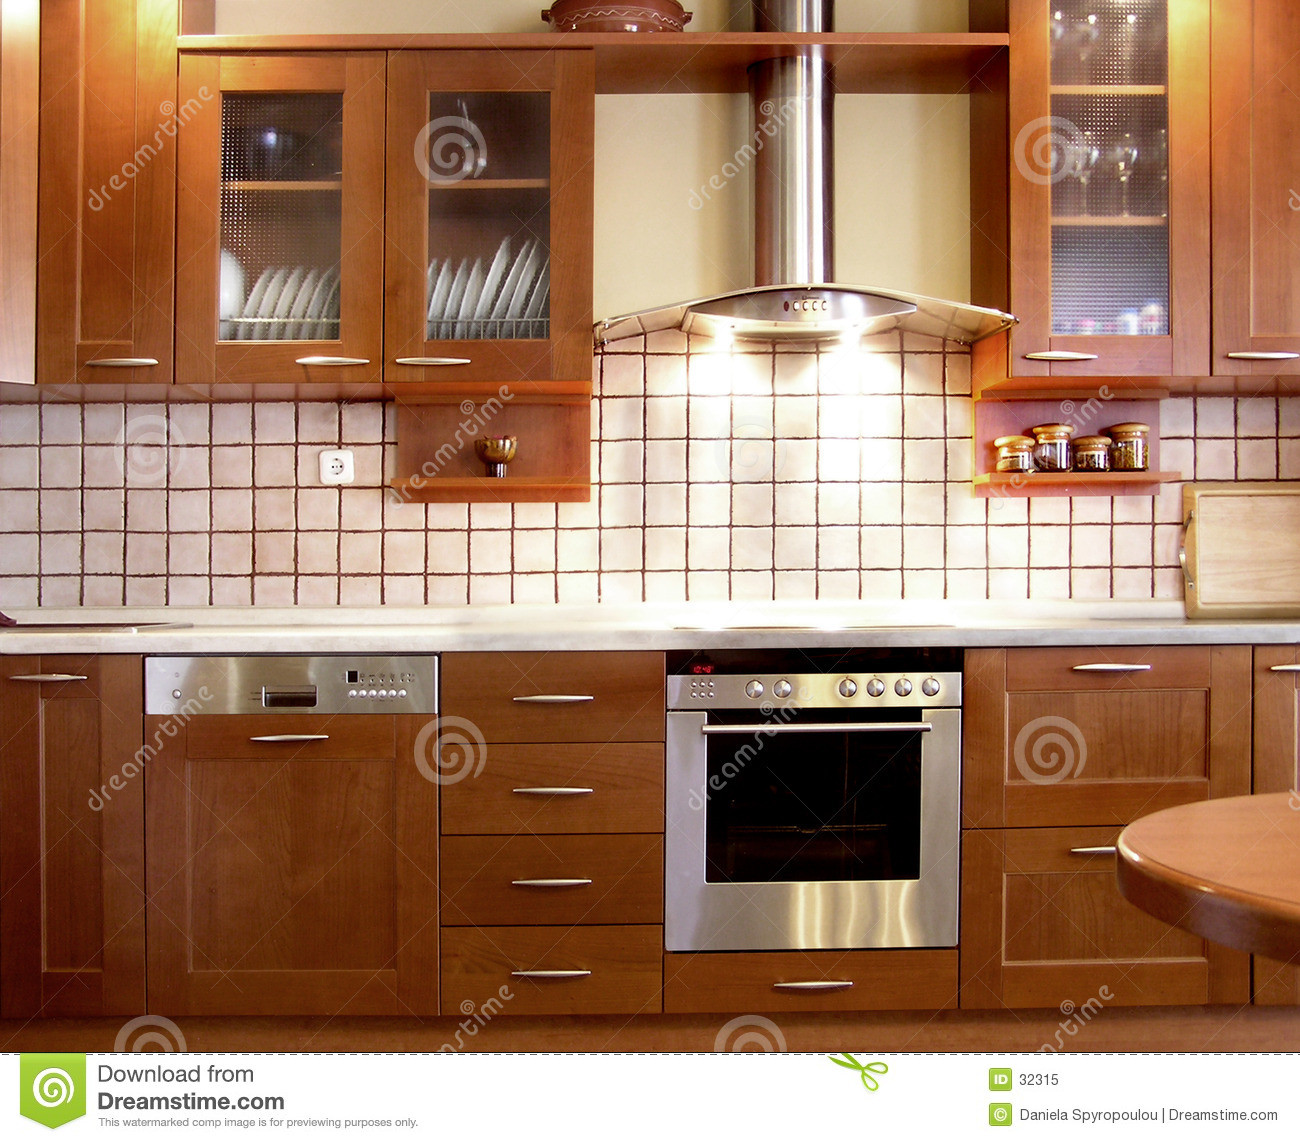 Best ideas about Kitchen Decoration Image . Save or Pin Cherry kitchen design stock image Image of kitchens Now.